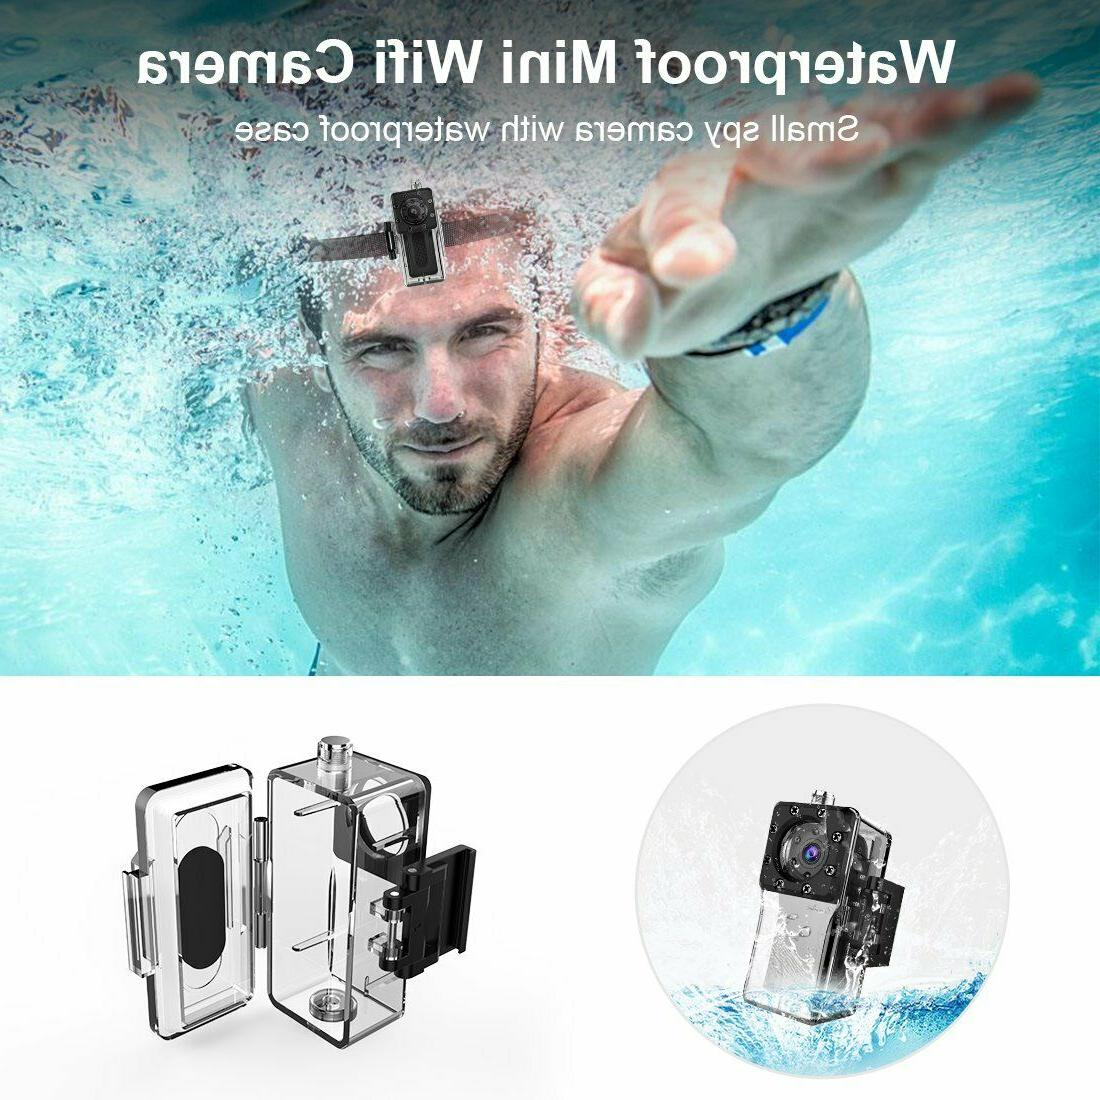 Waterproof Spy Camera Wireless Full Hd 1080P Portable N